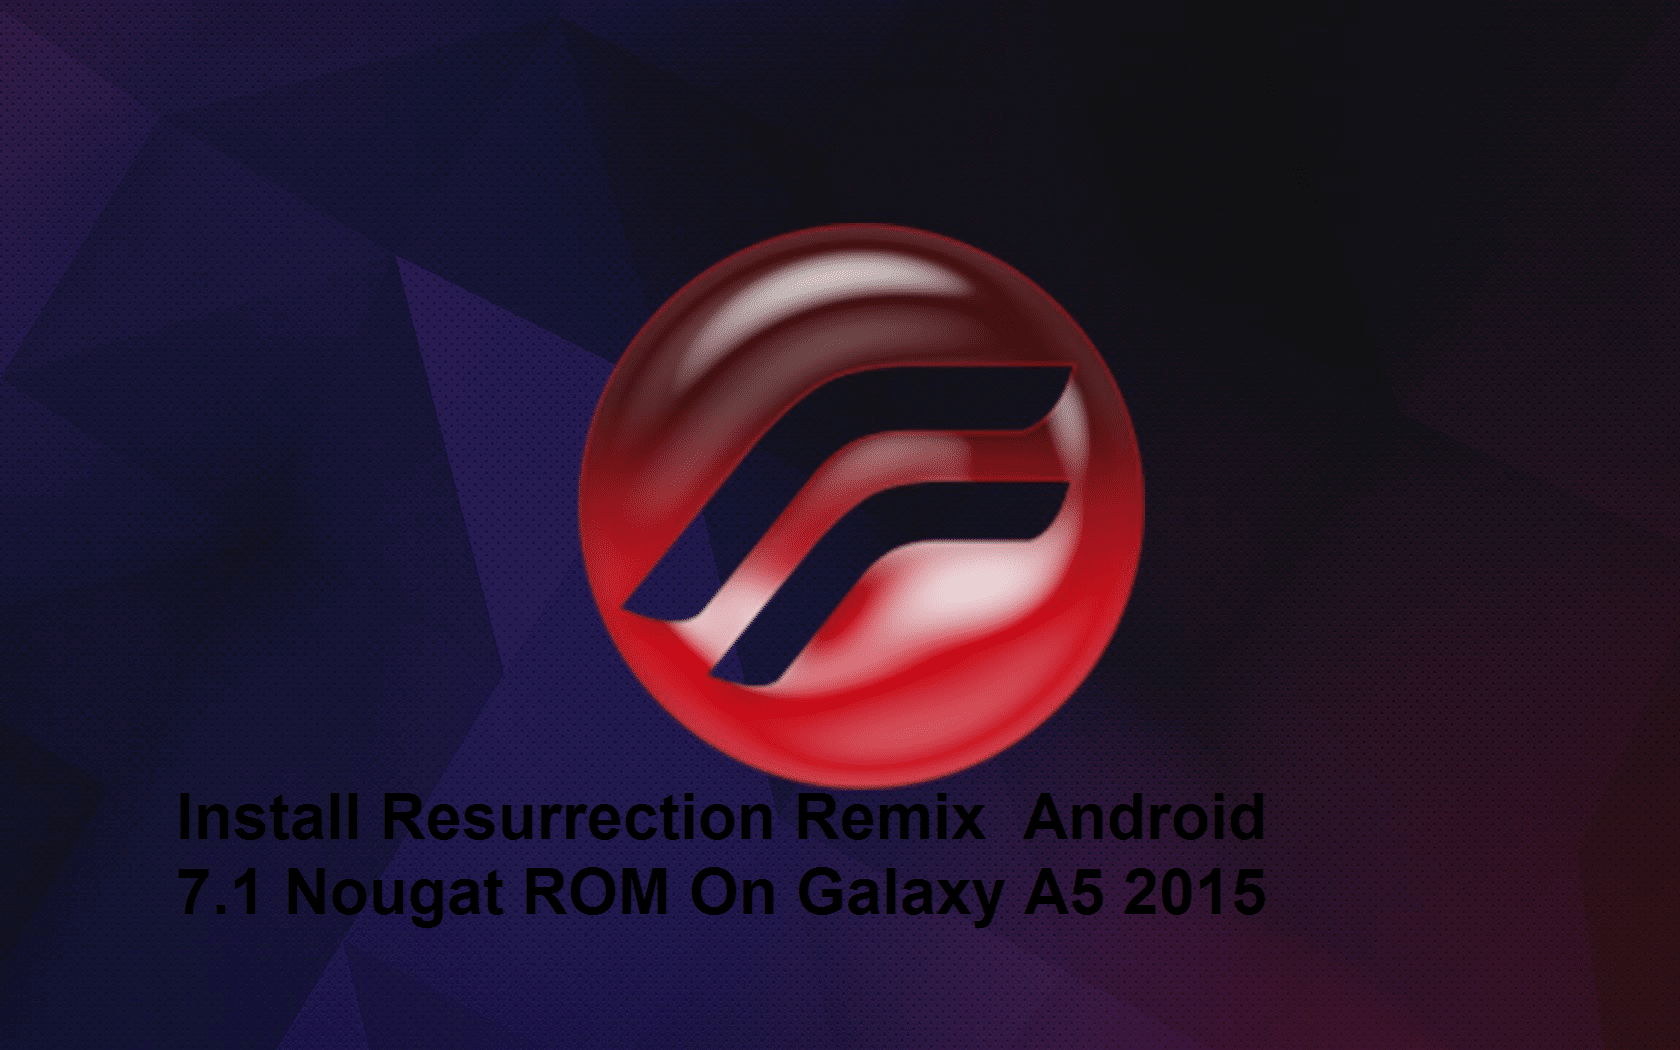 update Galaxy A5 to Android 7.1 Resurrection Remix ROM